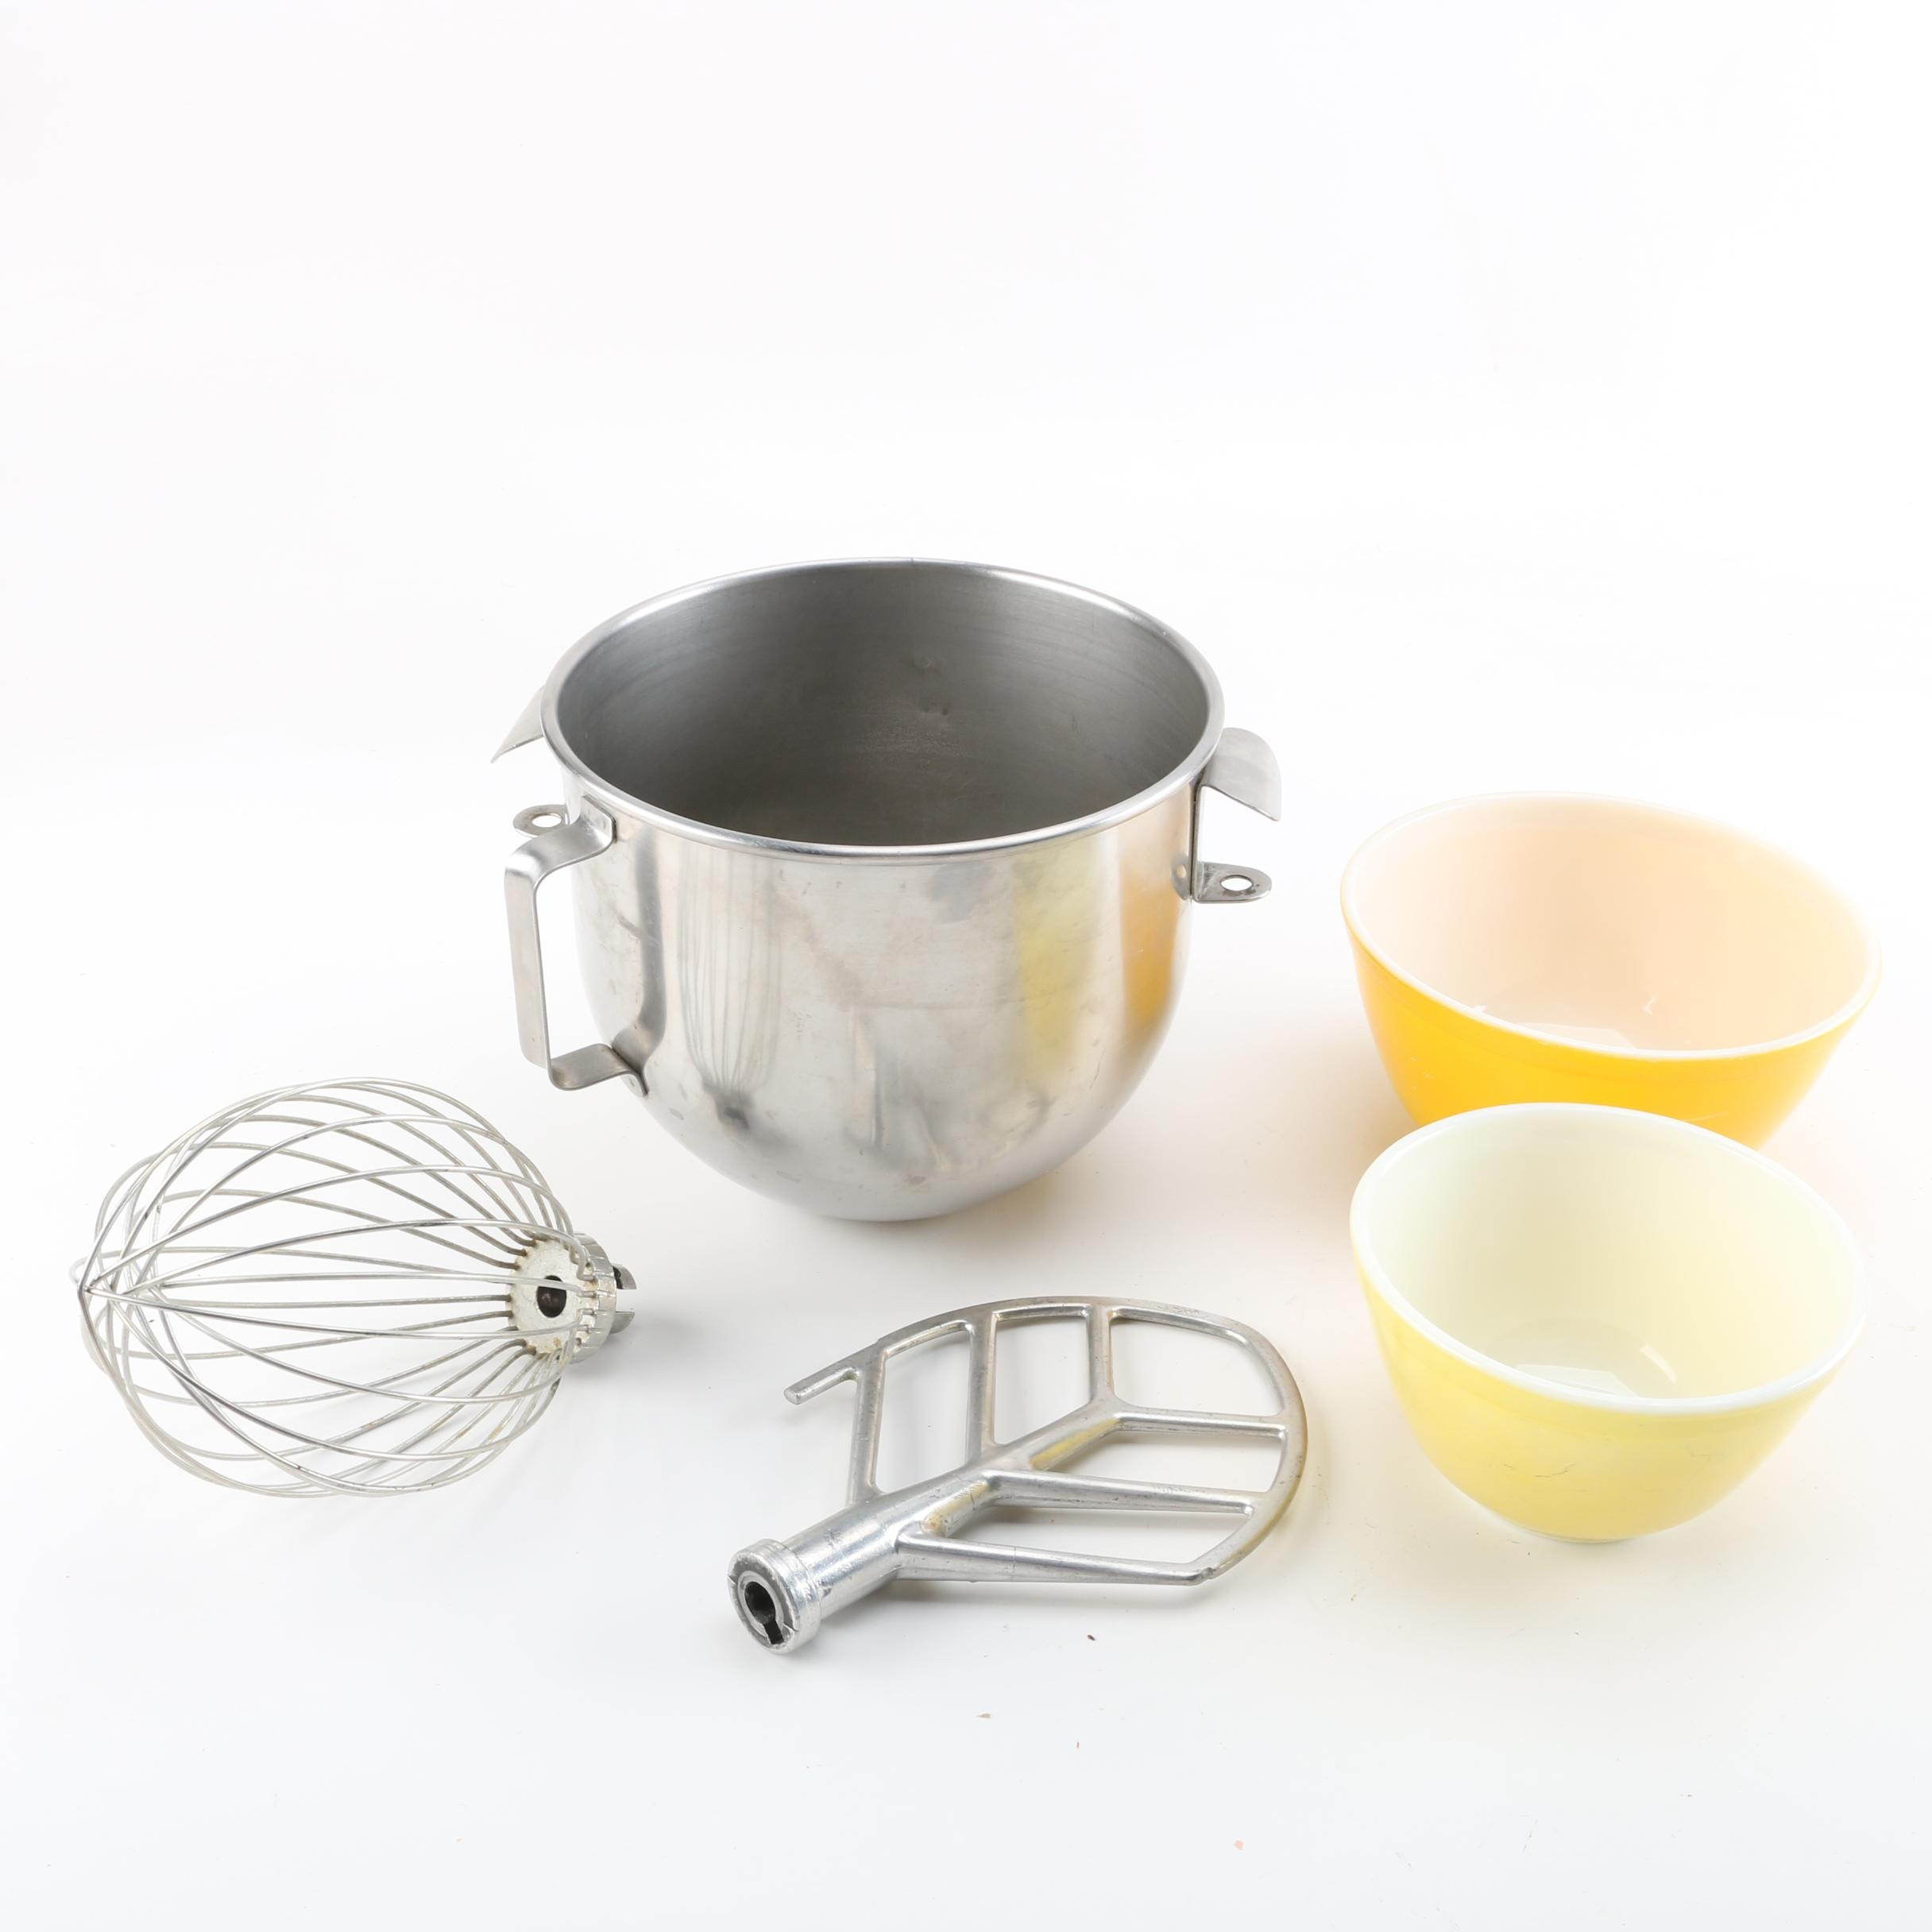 """Pyrex """"Primary Colors"""" Glass and Stainless Steel Mixing Bowls with Attachments"""